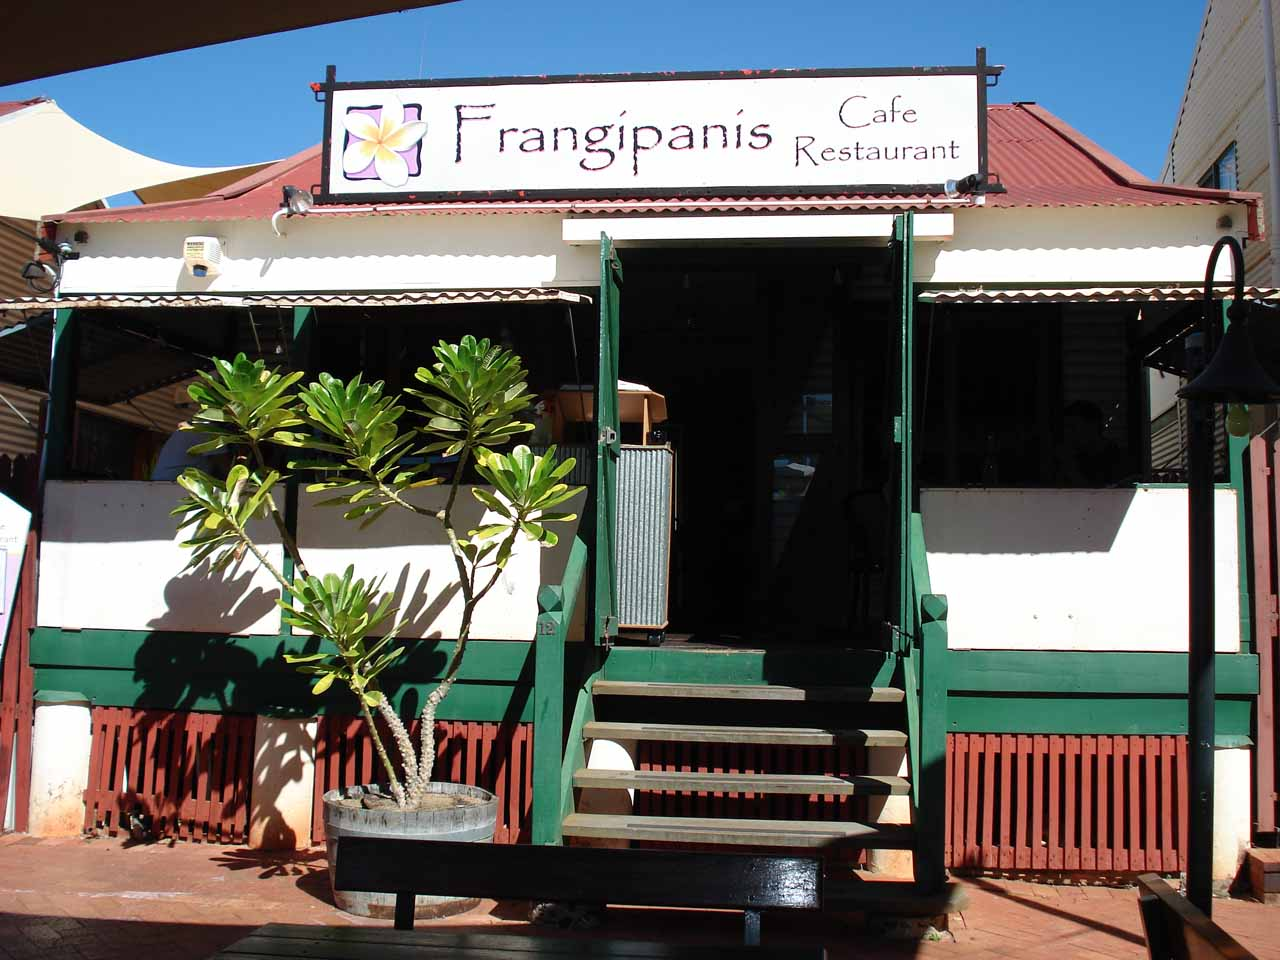 Our little lunch spot in Broome